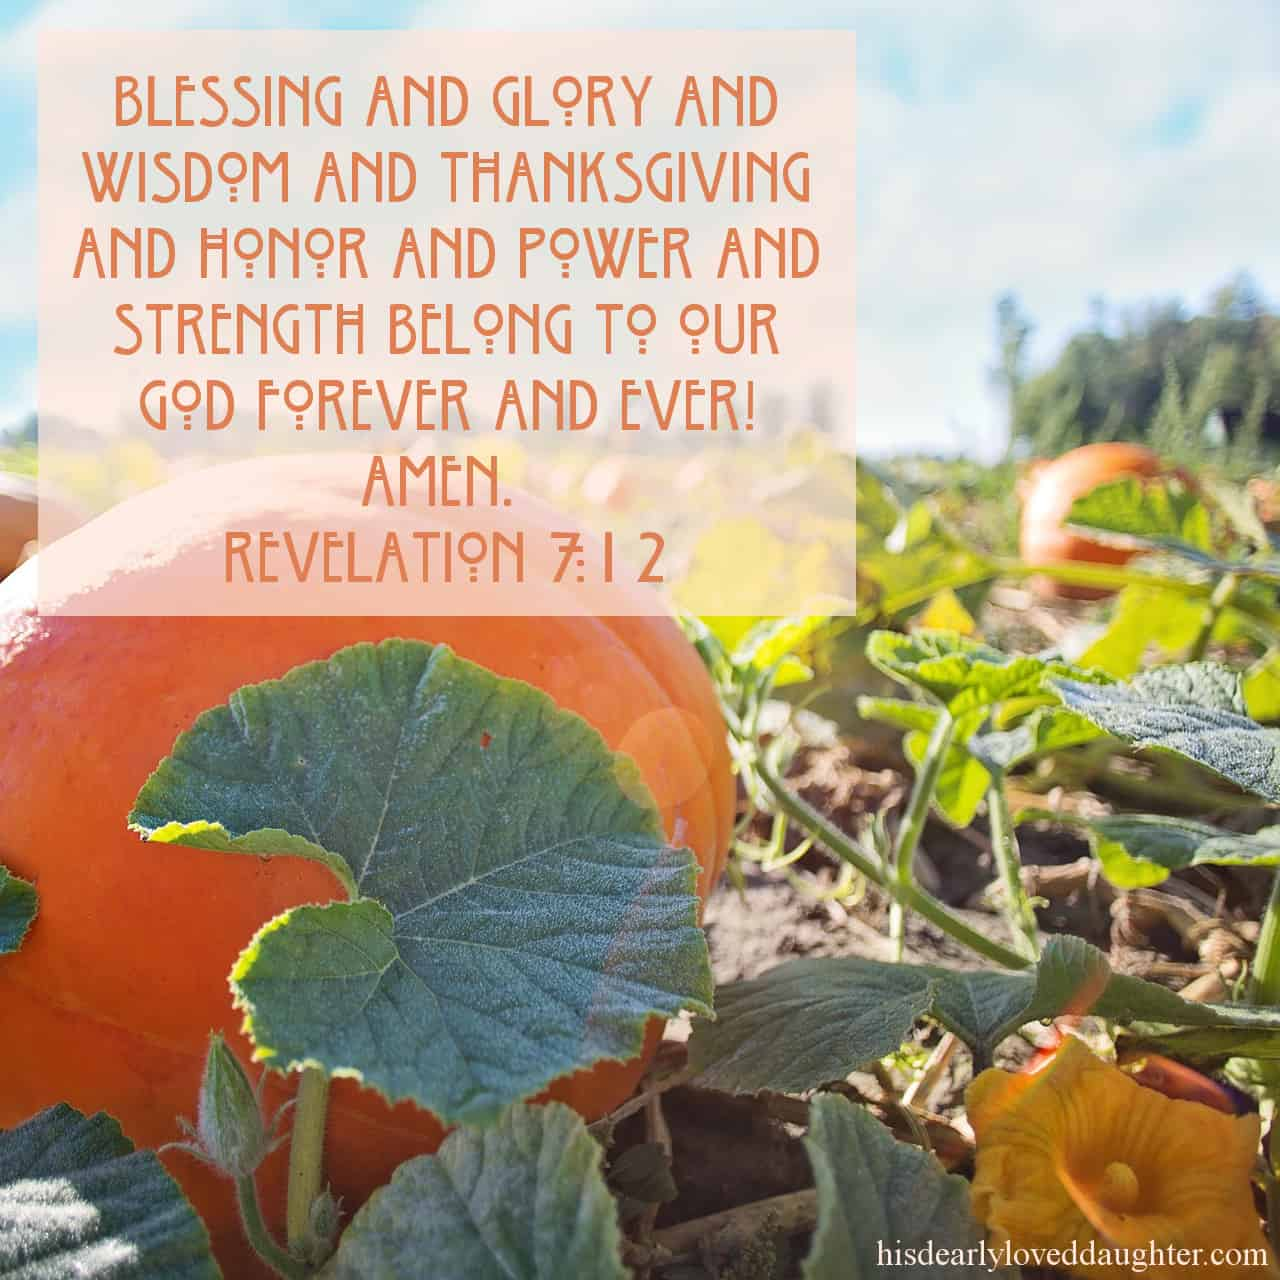 Blessing and glory and wisdom and thanksgiving and honor and power and strength belong to our God forever and ever! Amen. Revelation 7:12